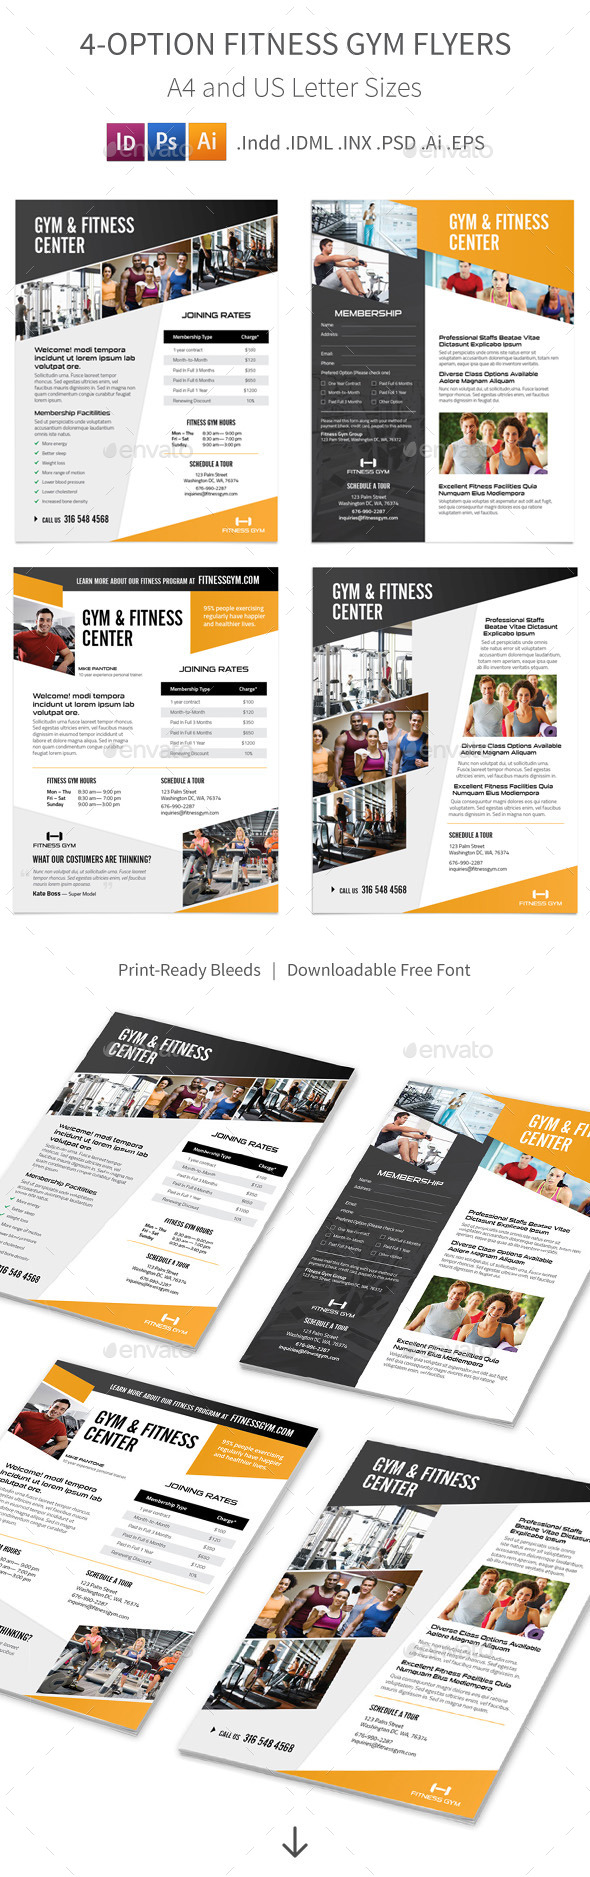 Fitness Gym Flyers – 4 Options